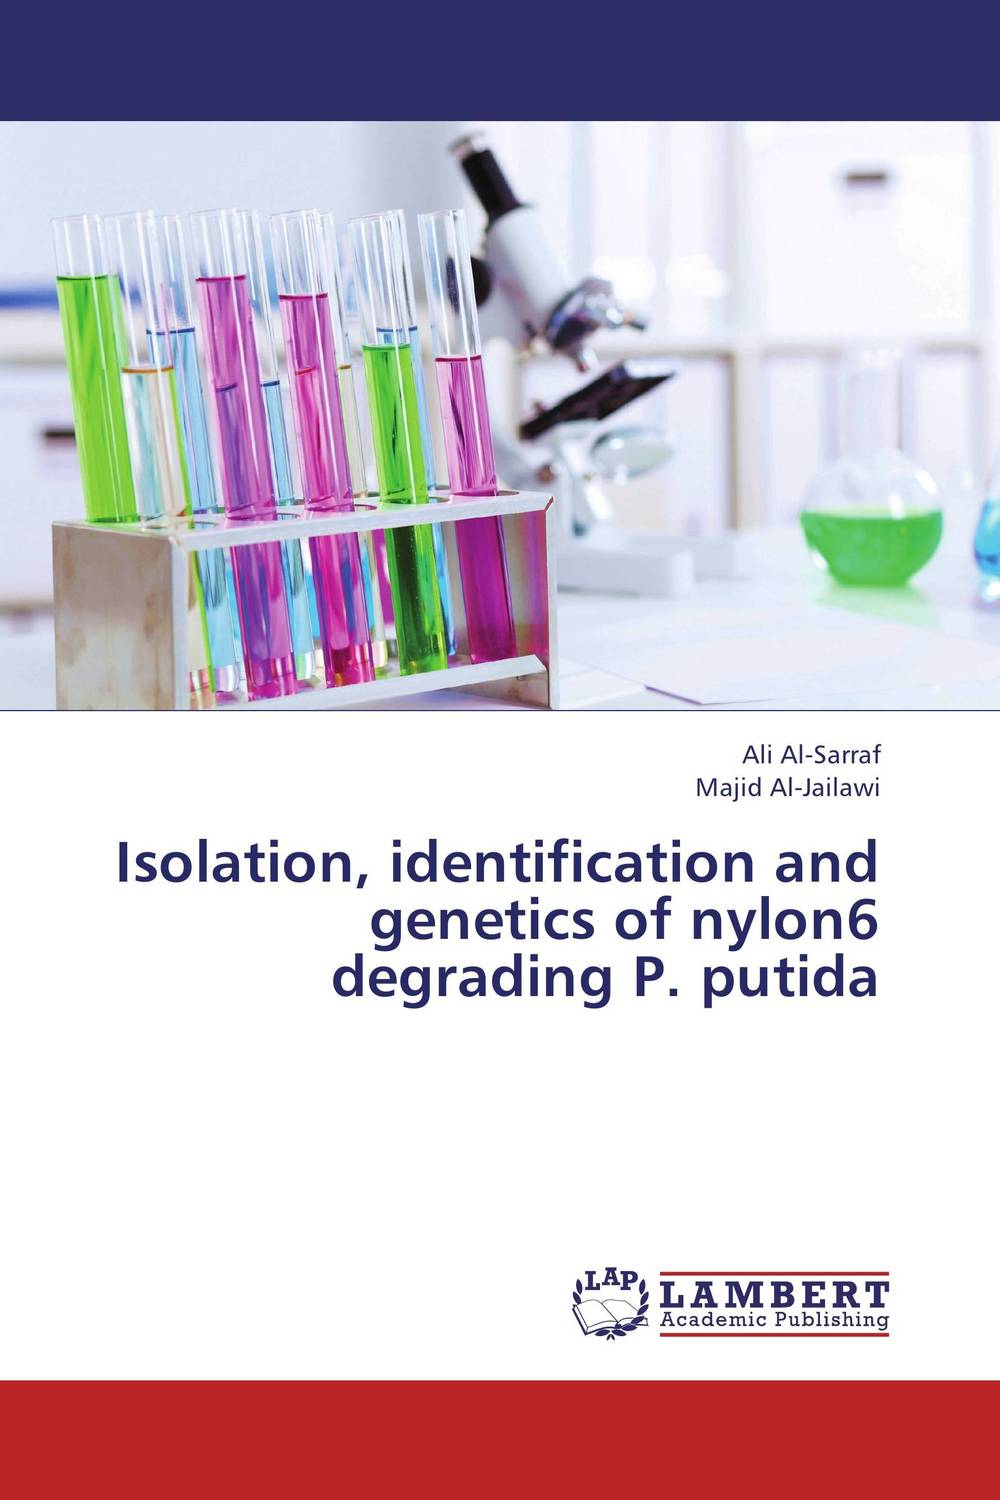 Isolation, identification and genetics of nylon6 degrading P. putida abhijeet singh seema ahuja and devendra jain screening molecular identification enzyme production of thermophiles